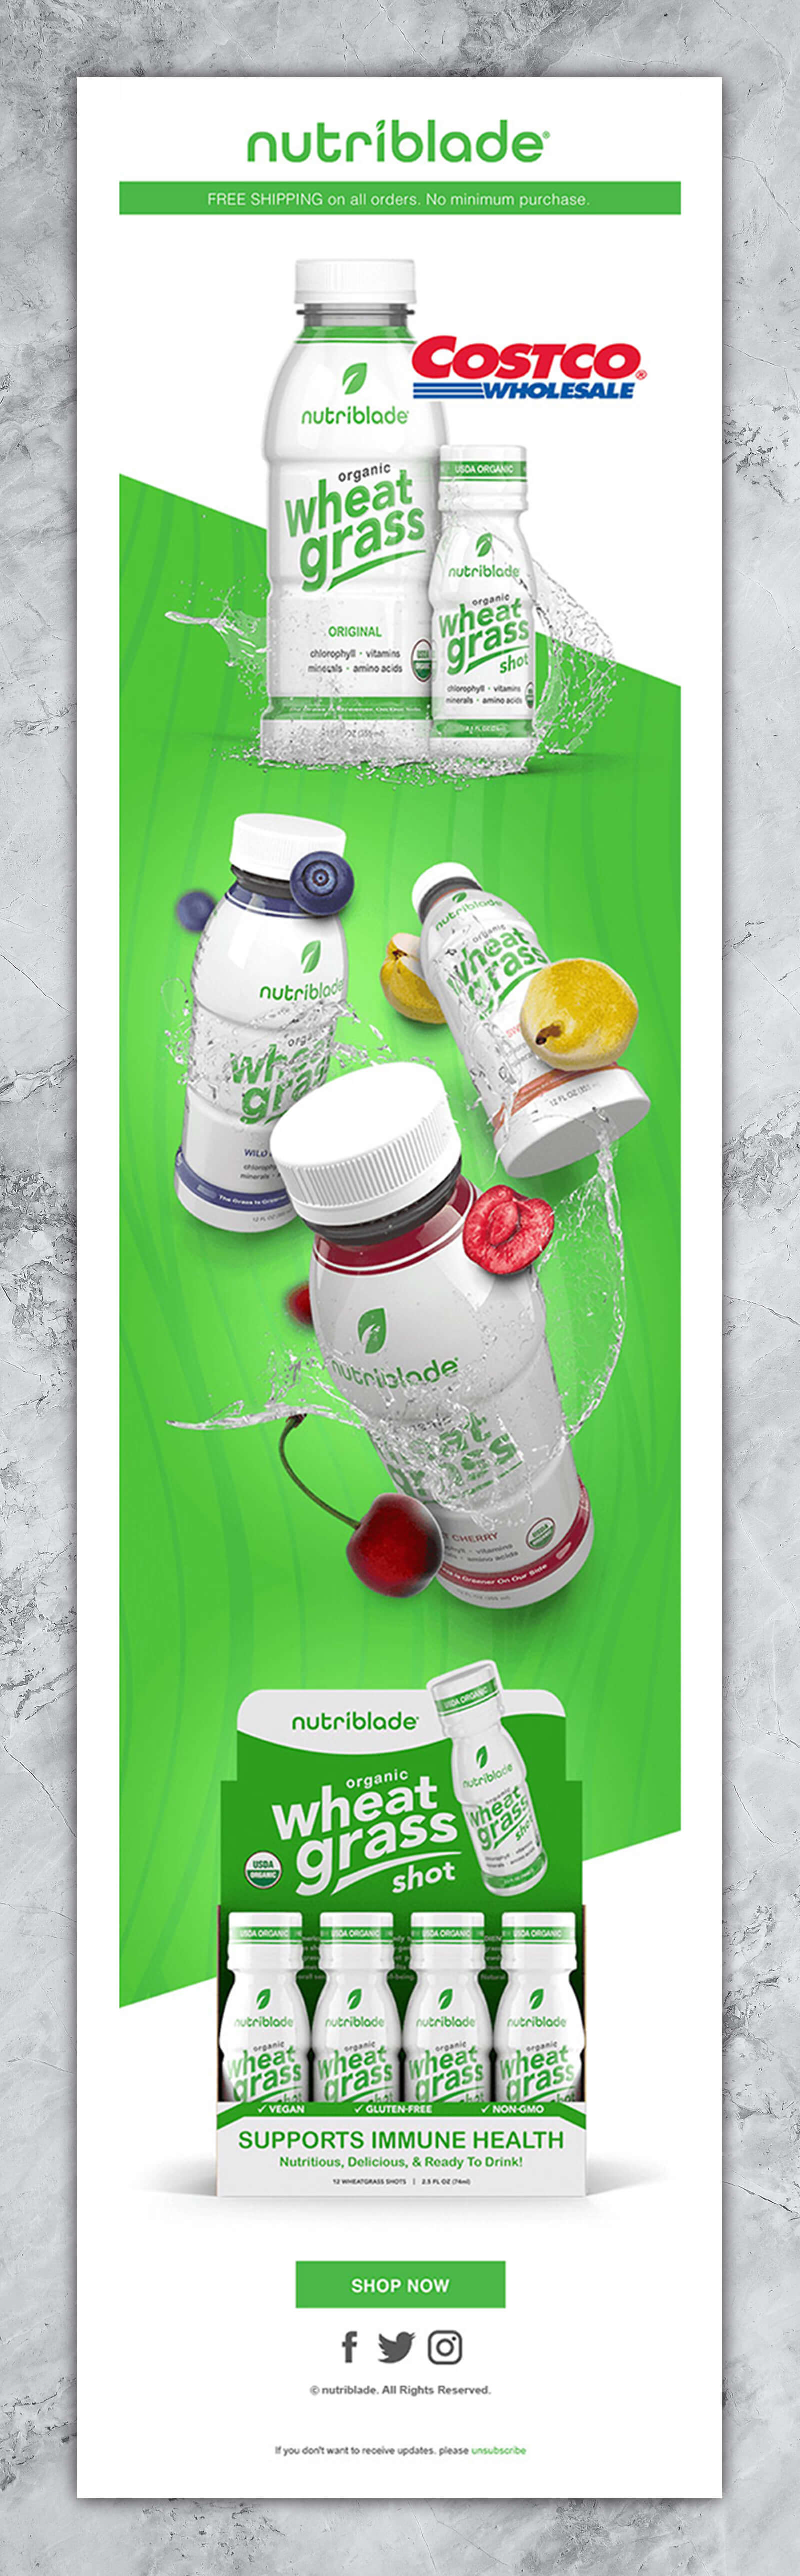 Email Marketing Company Graphic Showing Beverages In 3 Flavors Over Green Background